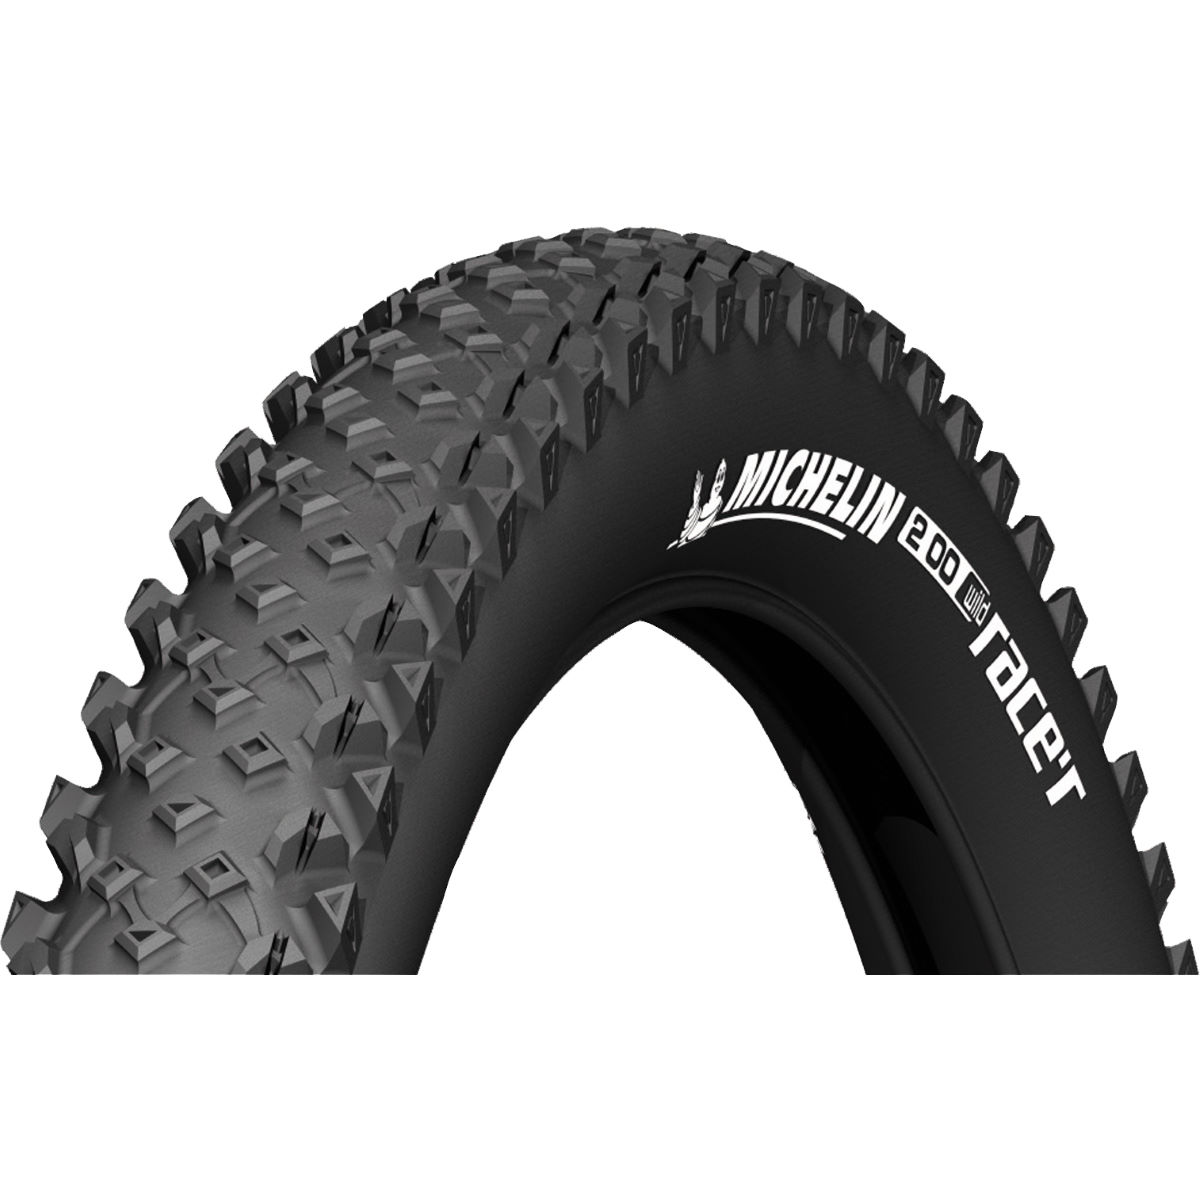 Pneu VTT Michelin Wild Race''r Advanced (souple) - 26 x 2.25 26' Noir